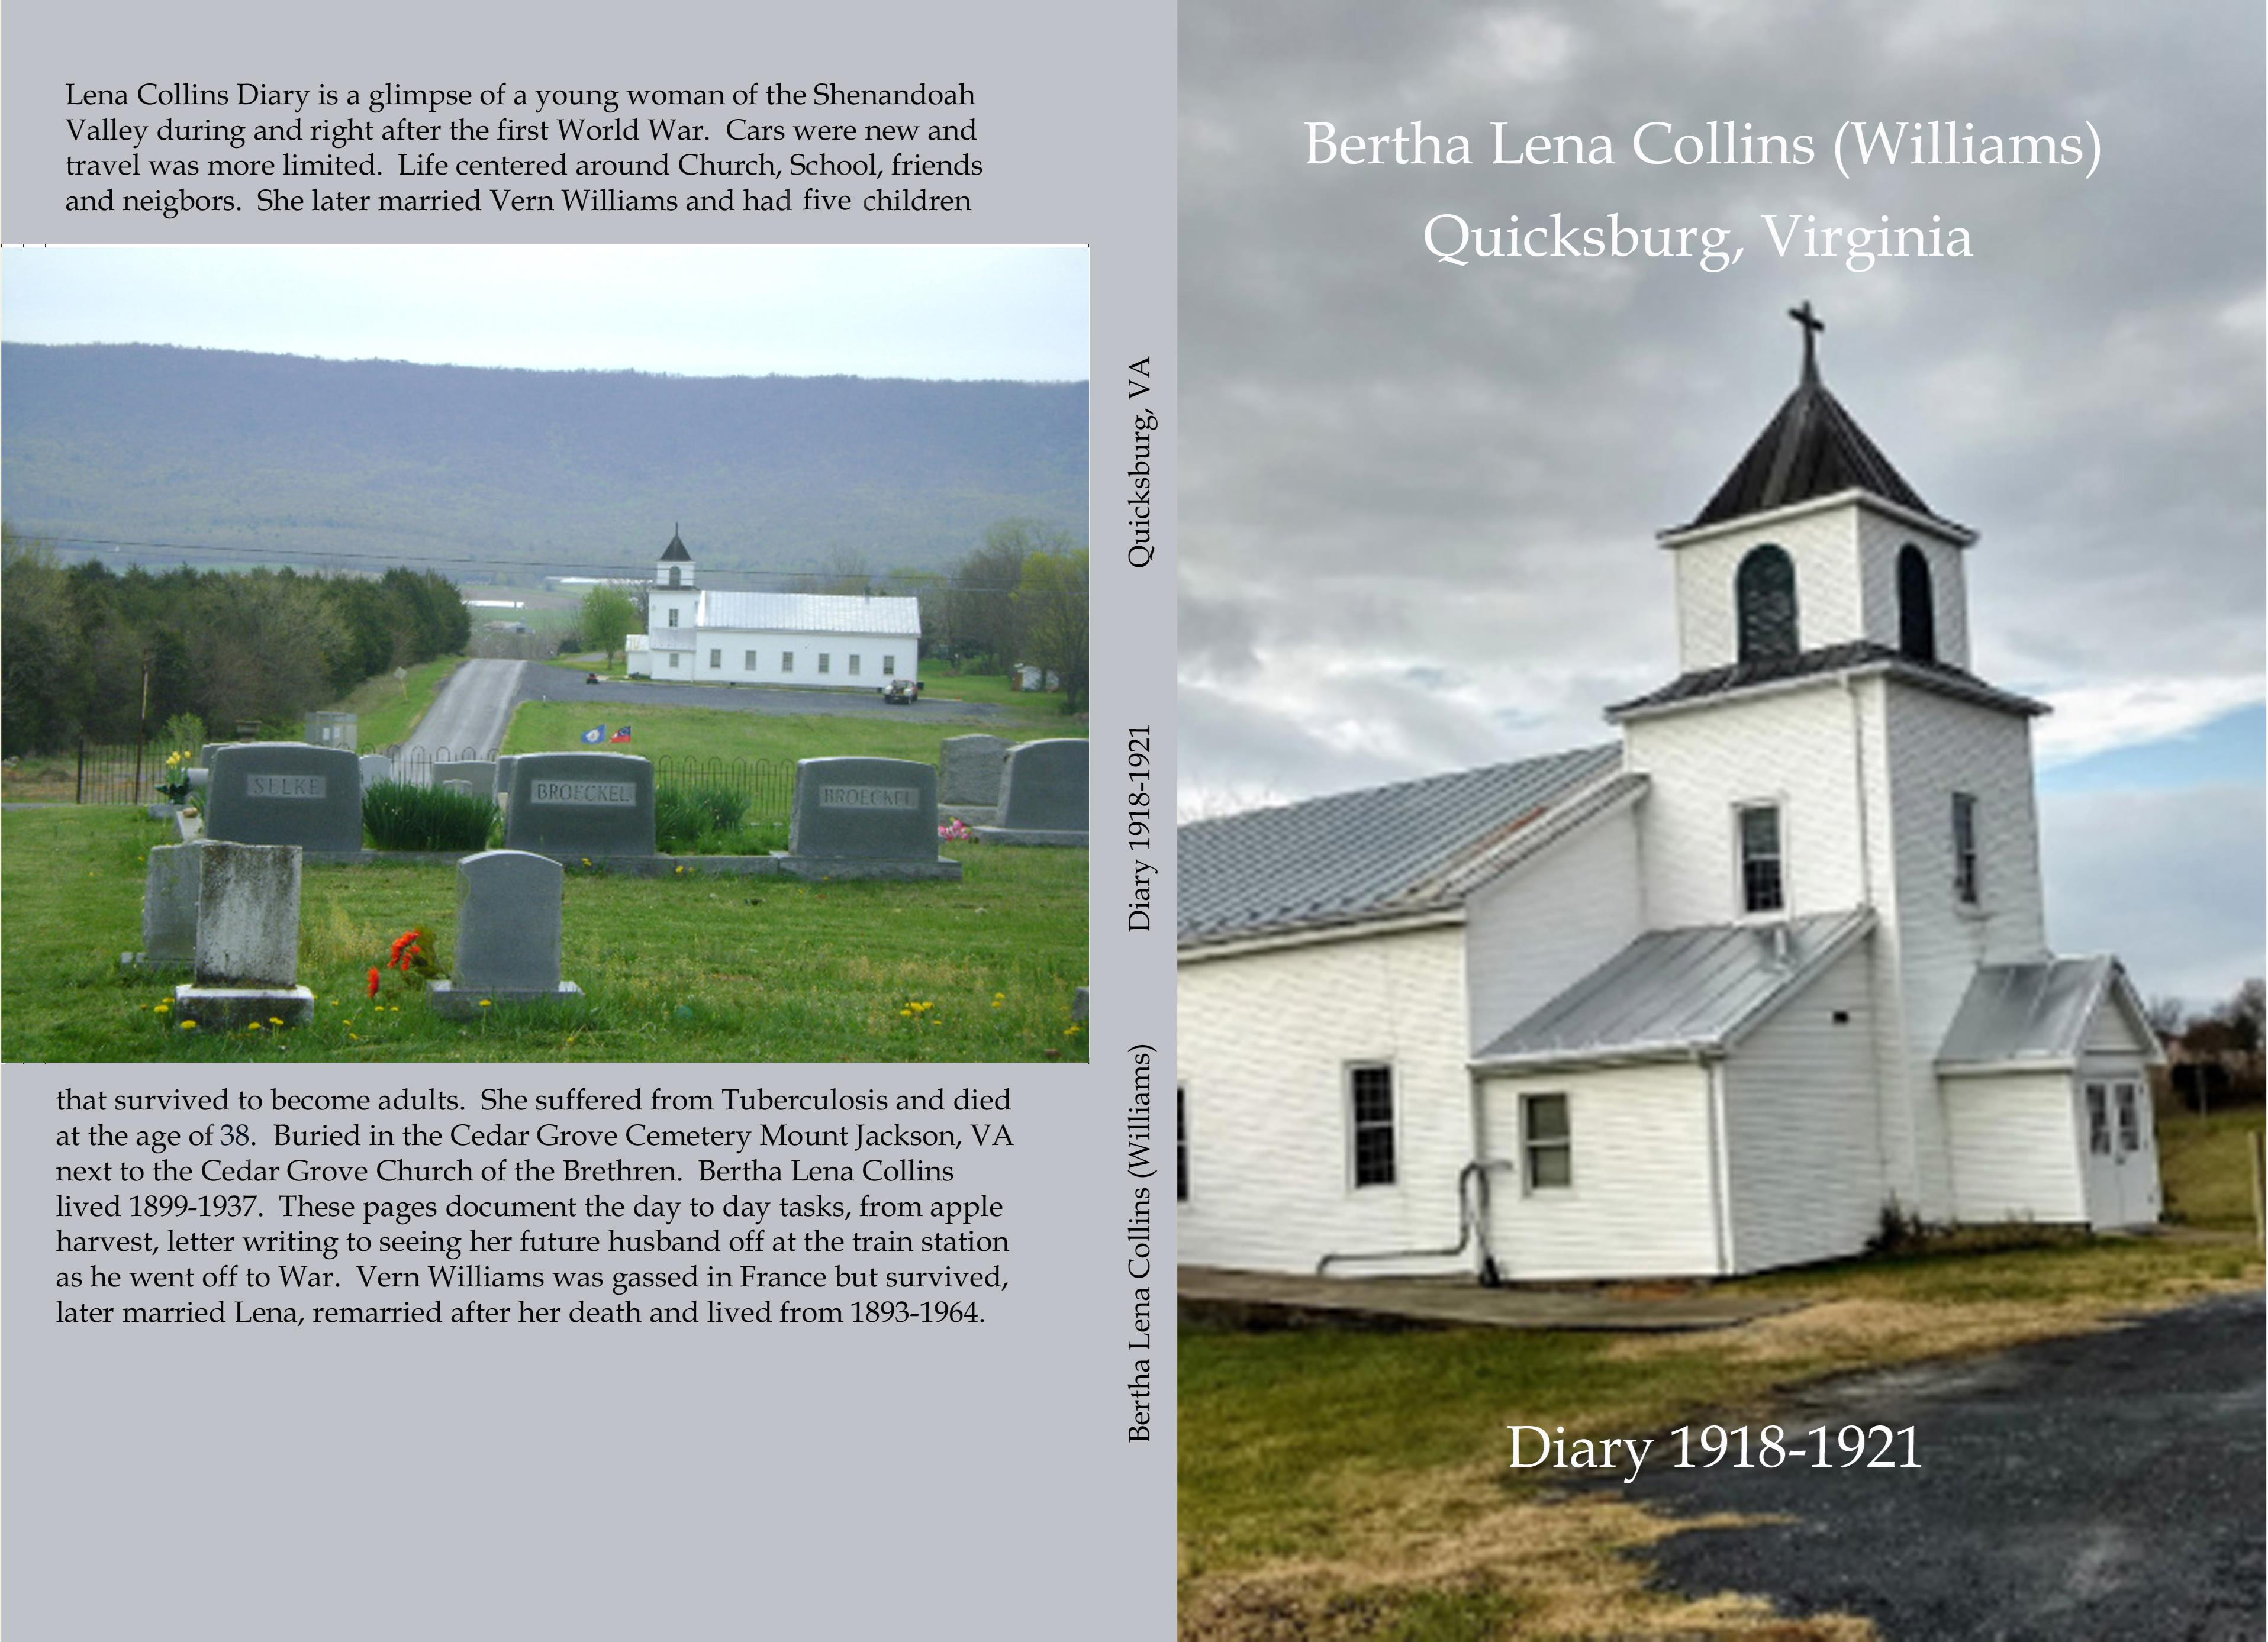 Bertha Lena Collins Williams Diary cover image